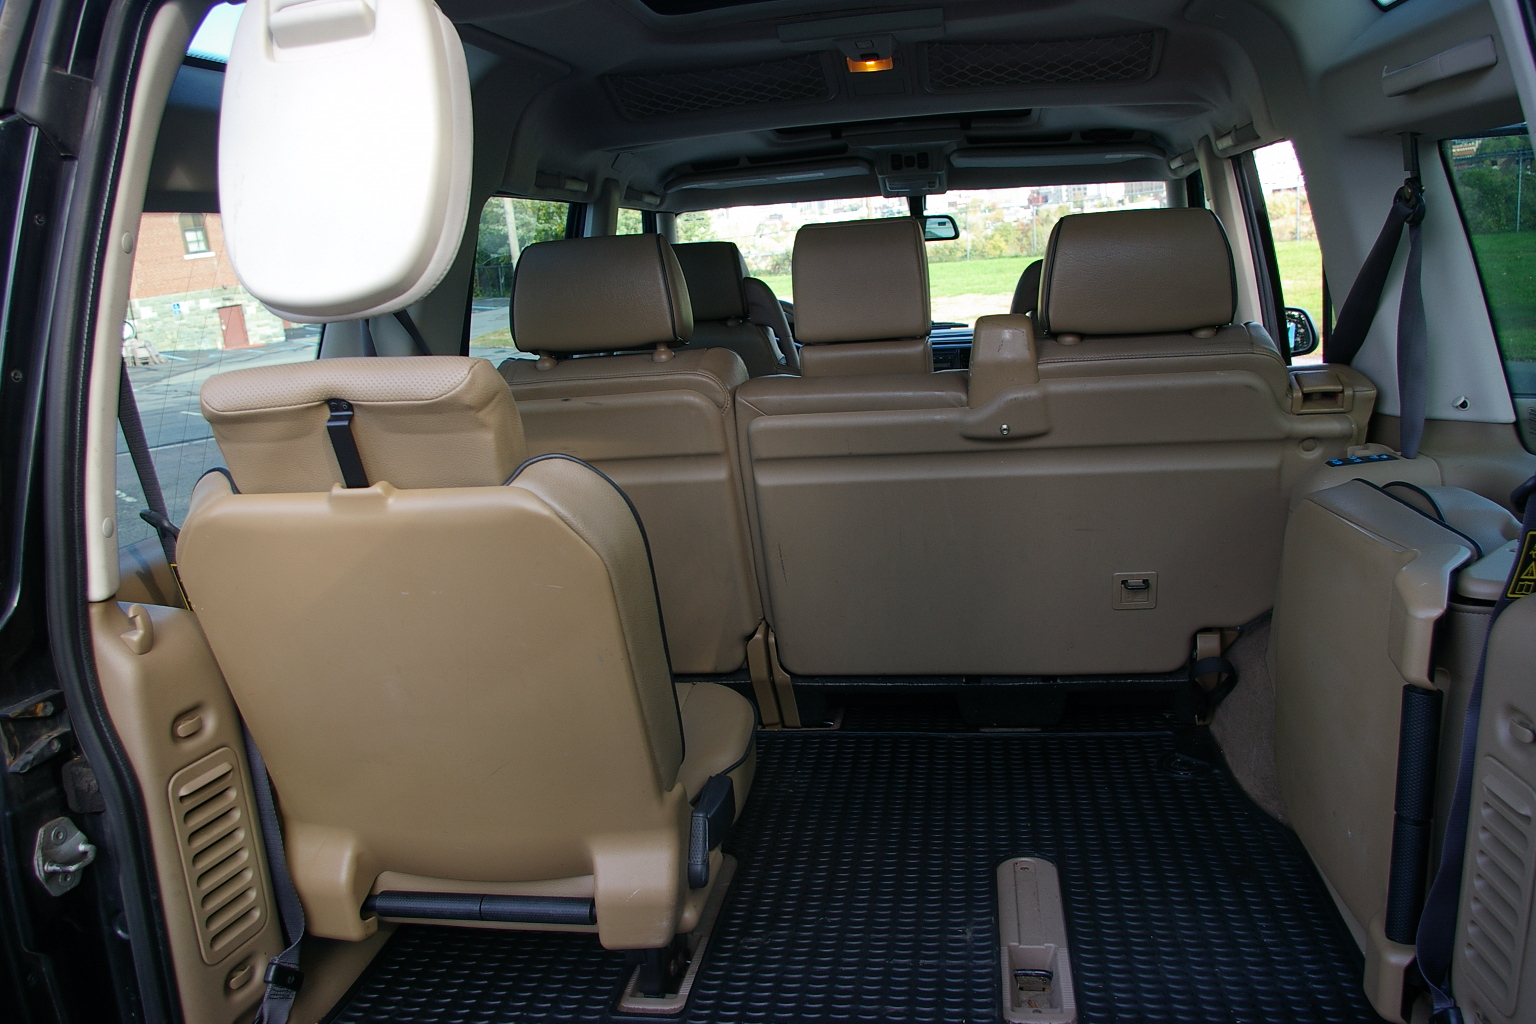 2002 Land Rover Discovery Series Ii Interior Pictures Cargurus